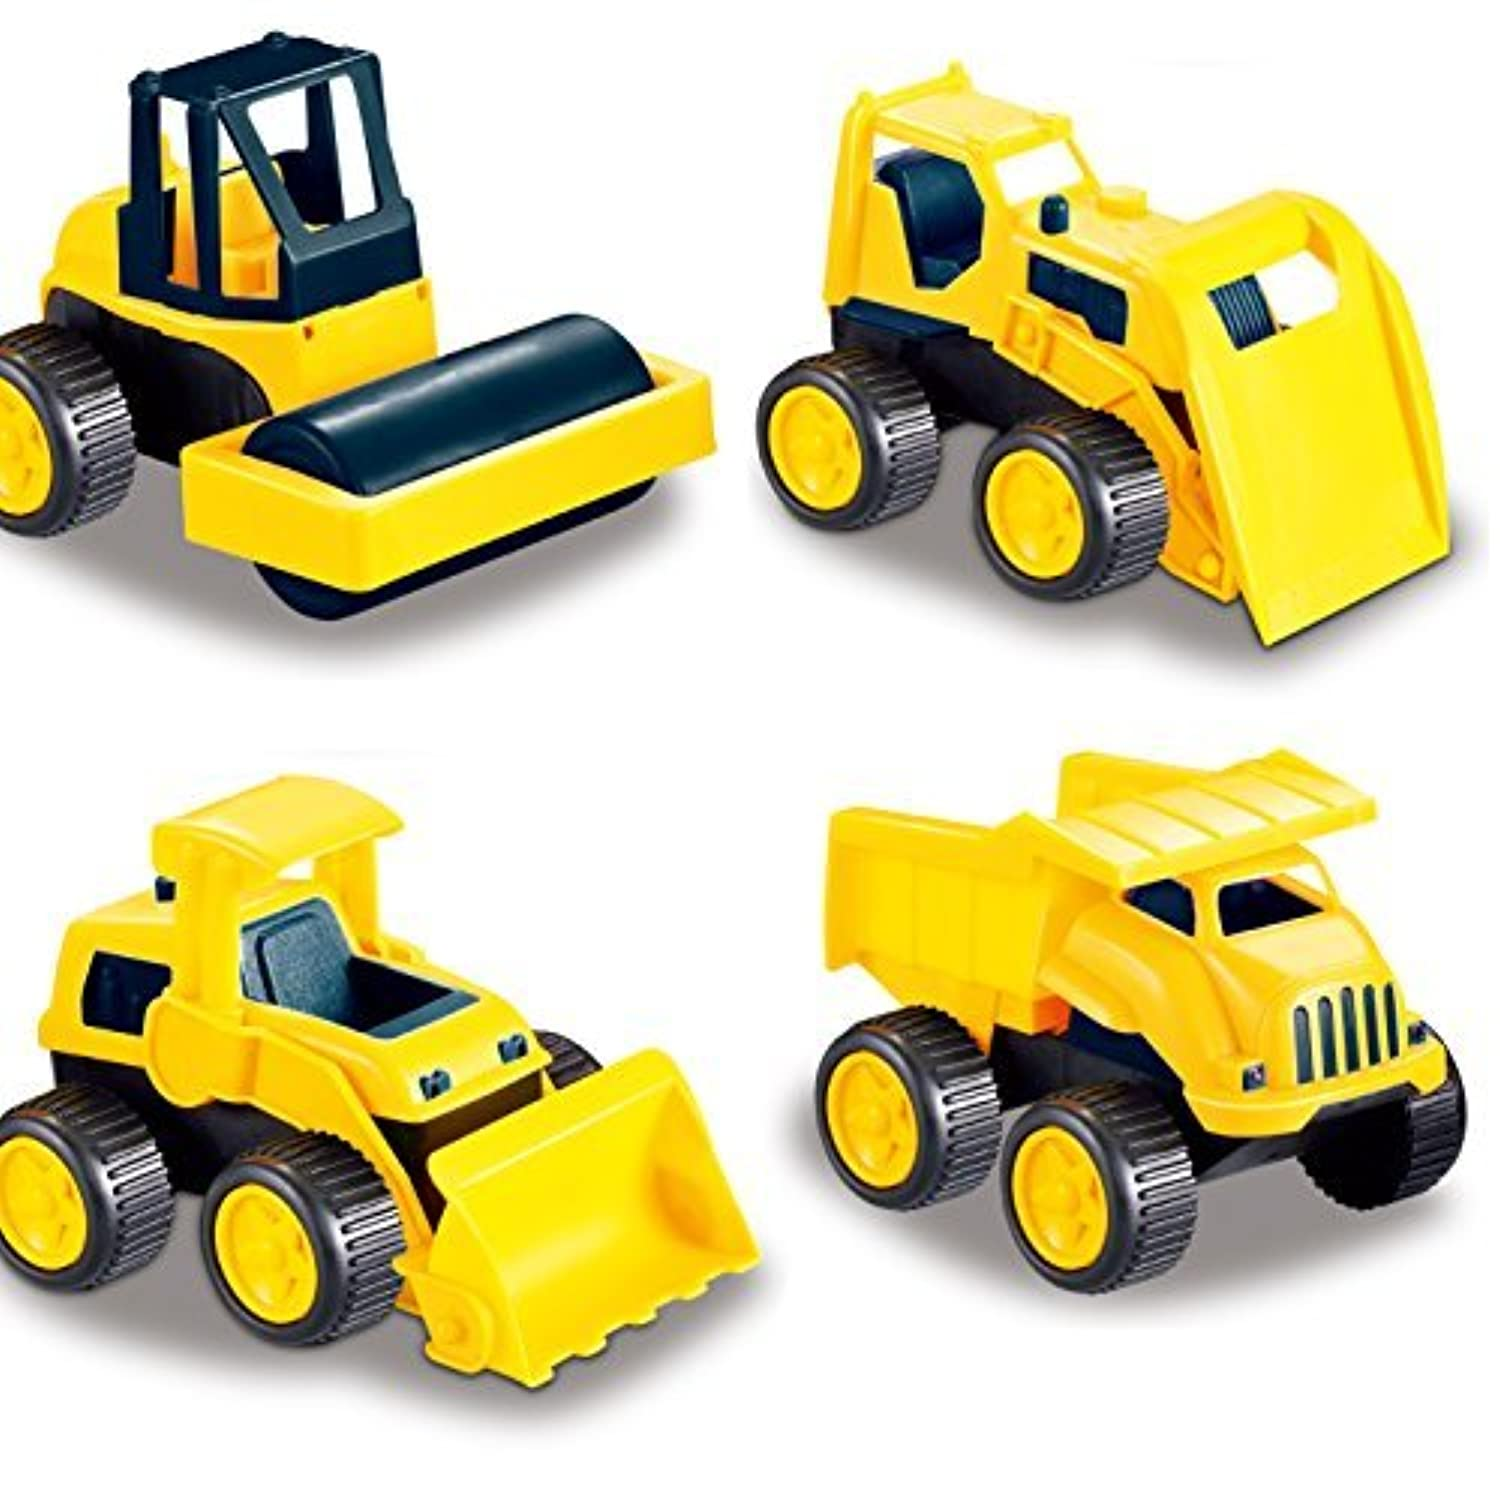 Road Repair Construction Vehicles Set of 4 Trucks Include: A Dump Truck Front Wheel Tractor Asphalt Paver and Bulldozer [並行輸入品]